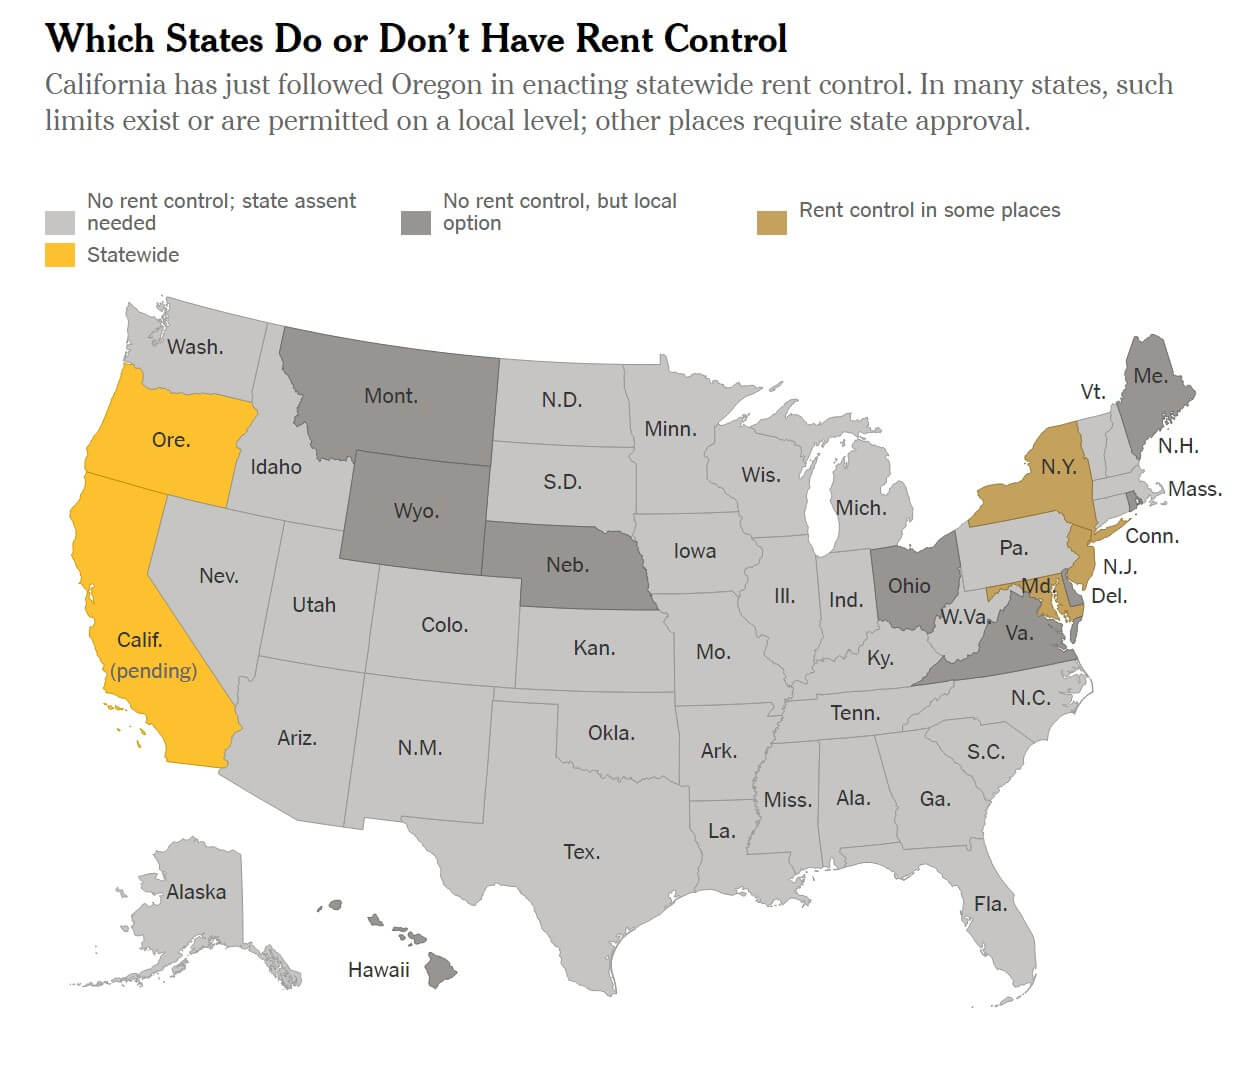 Rent control states across the US